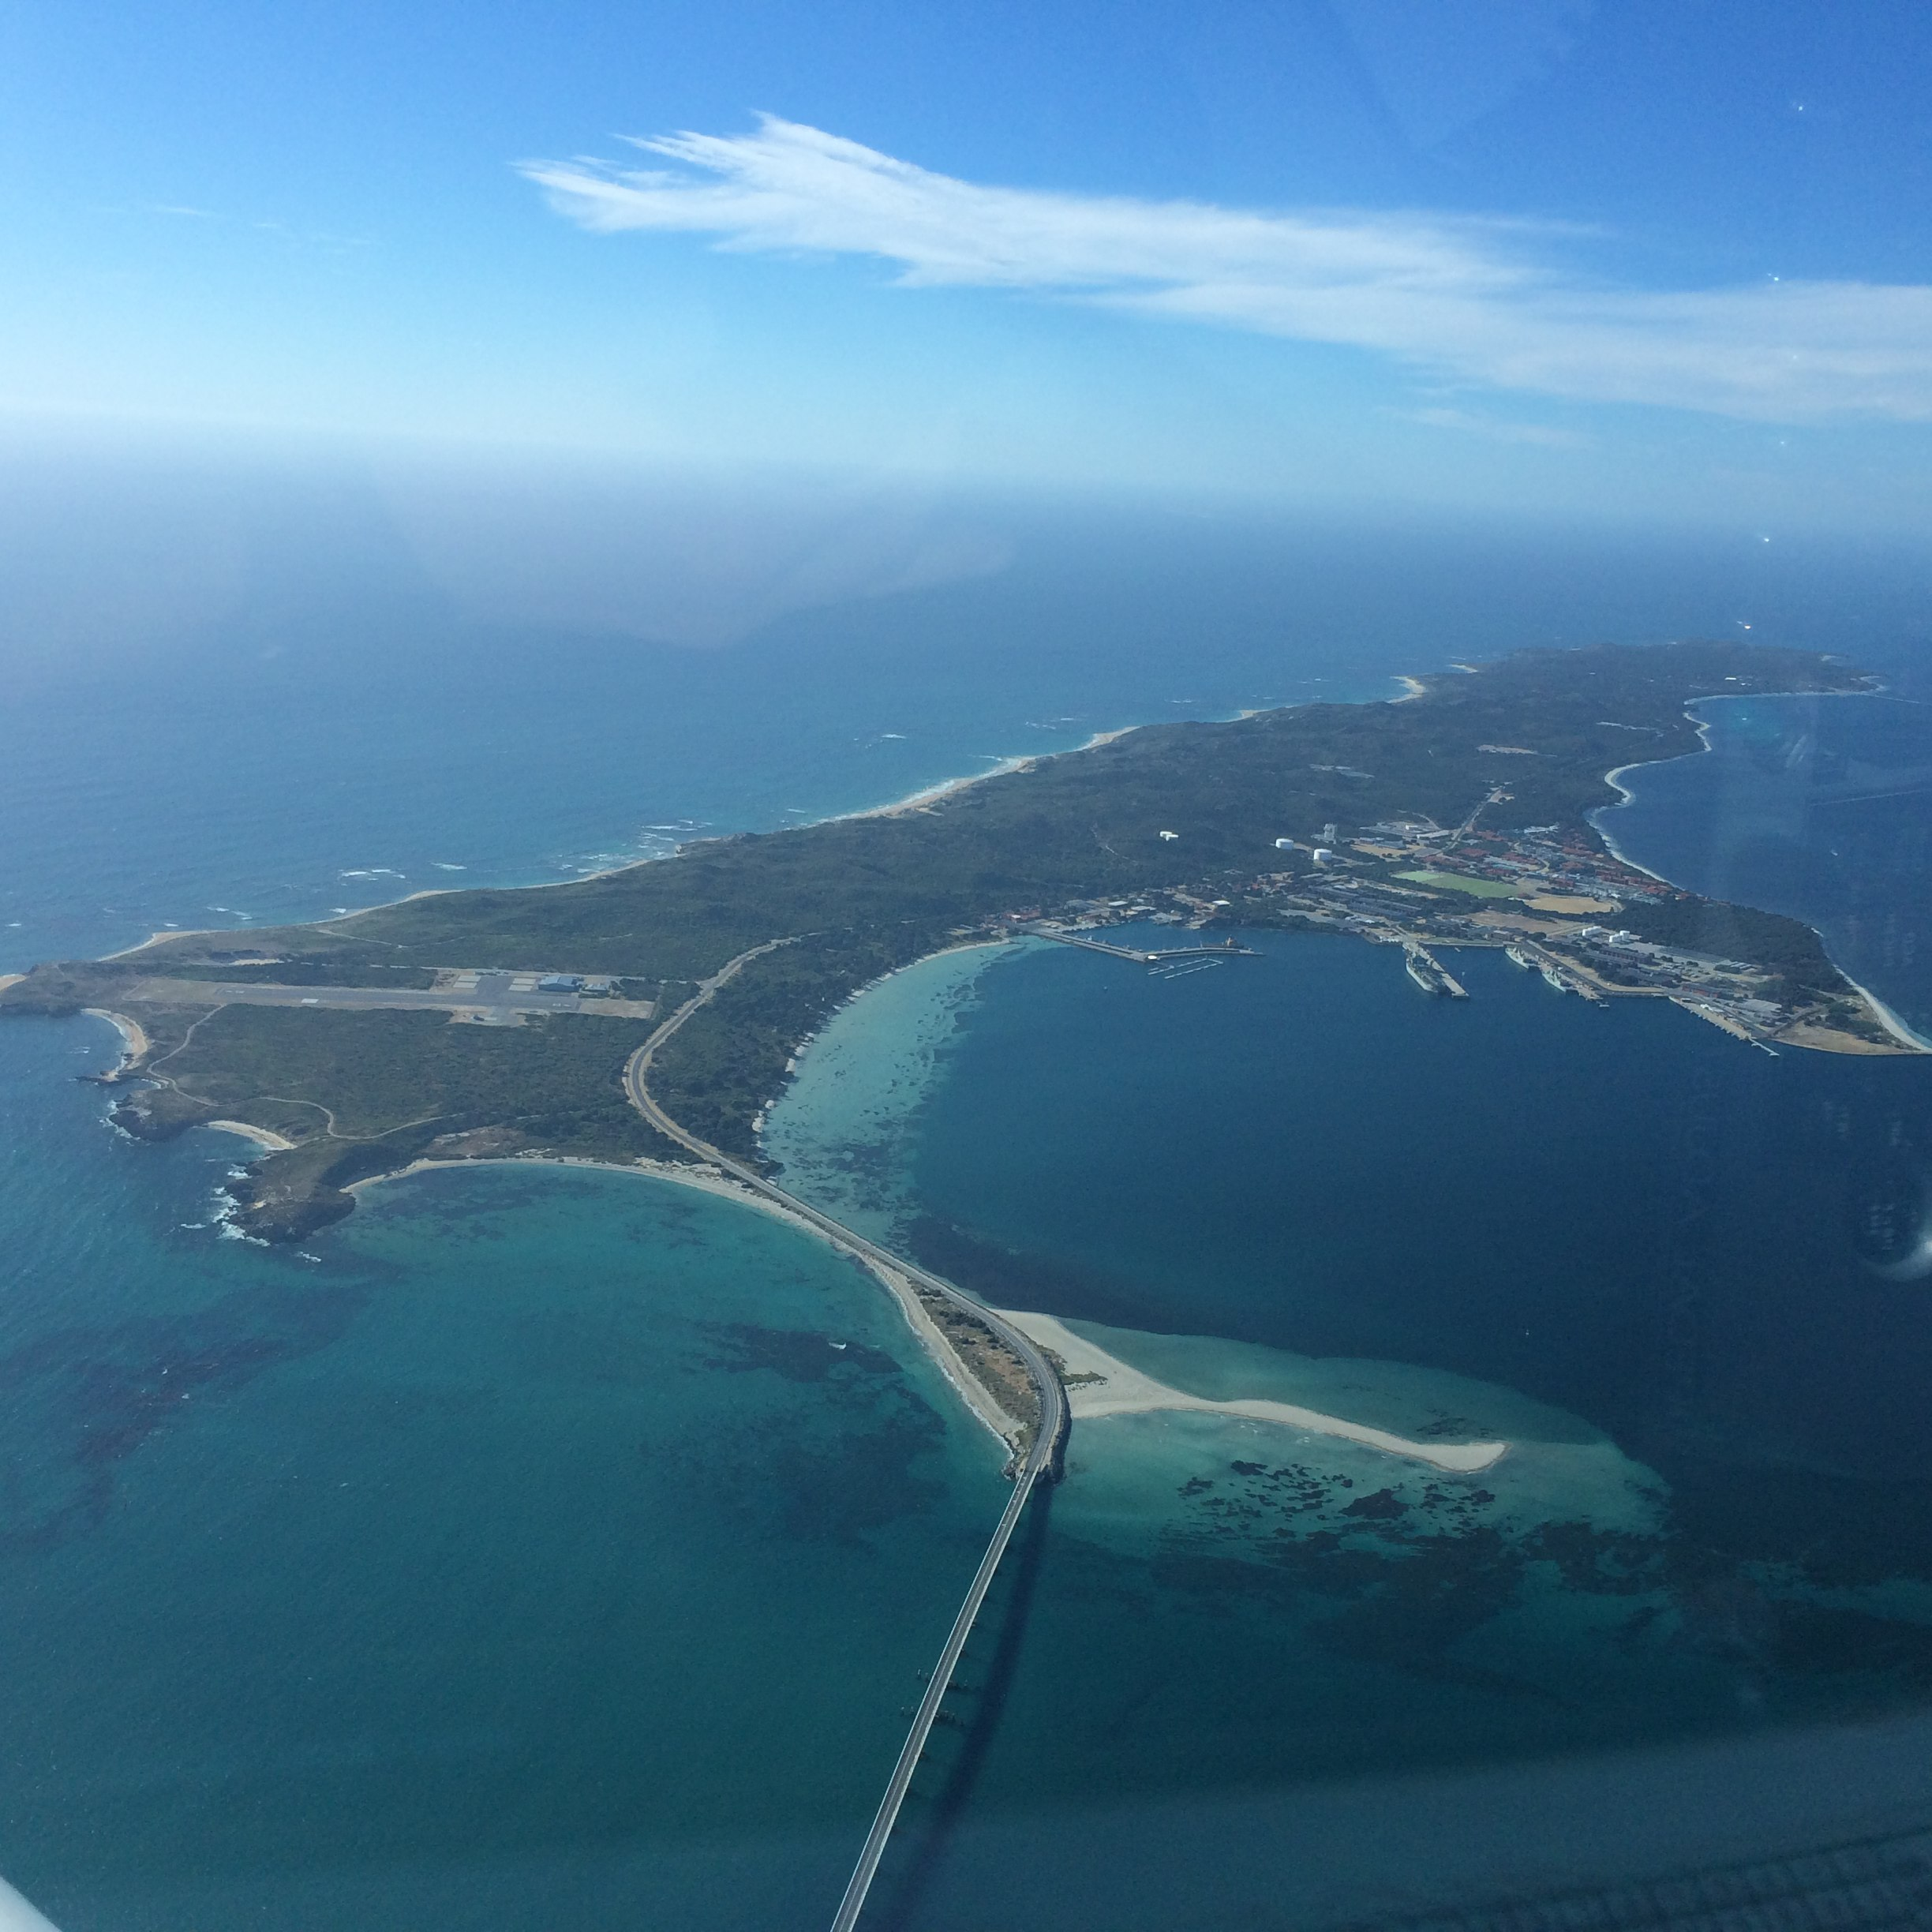 garden island western australia from university flying club aircraft VH-EZT